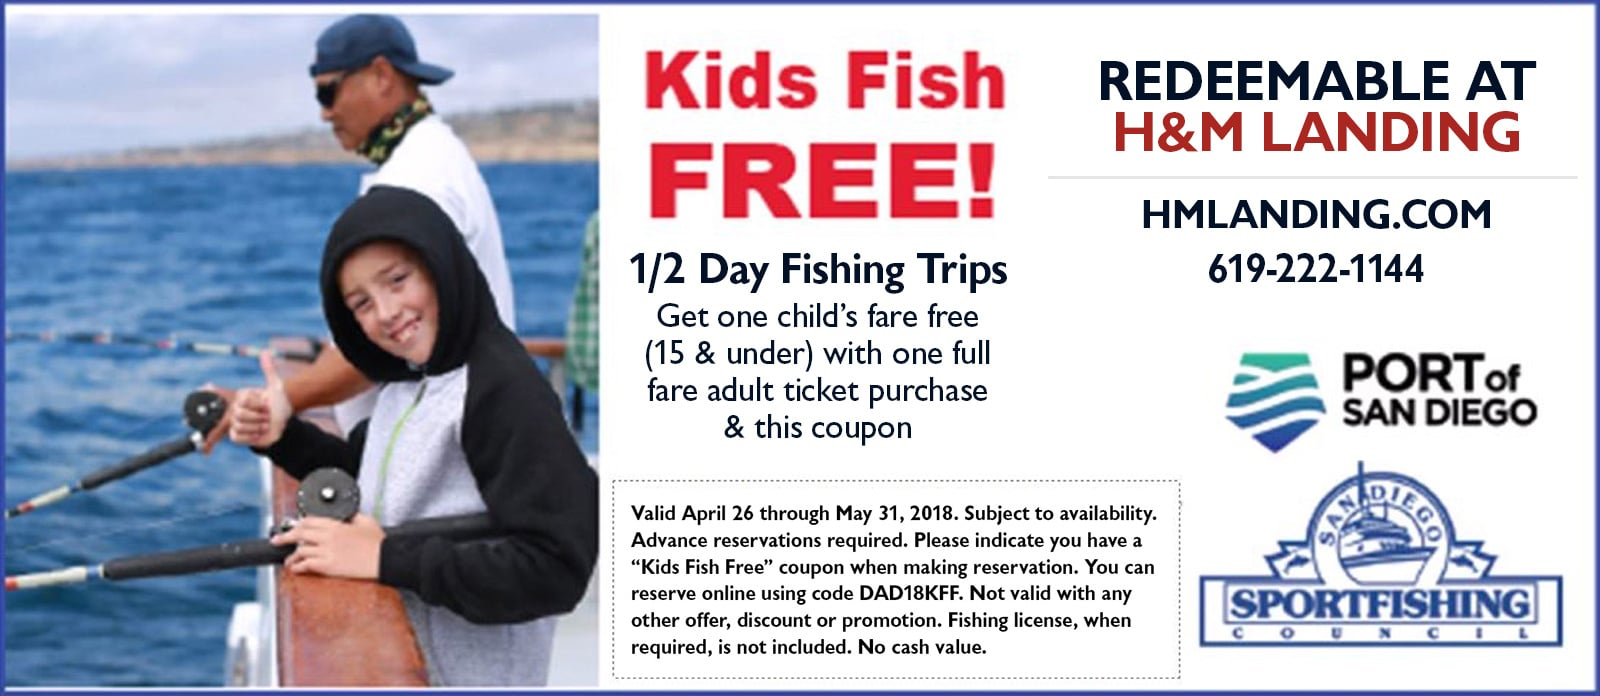 Kids Fish Free in May at H&M landing